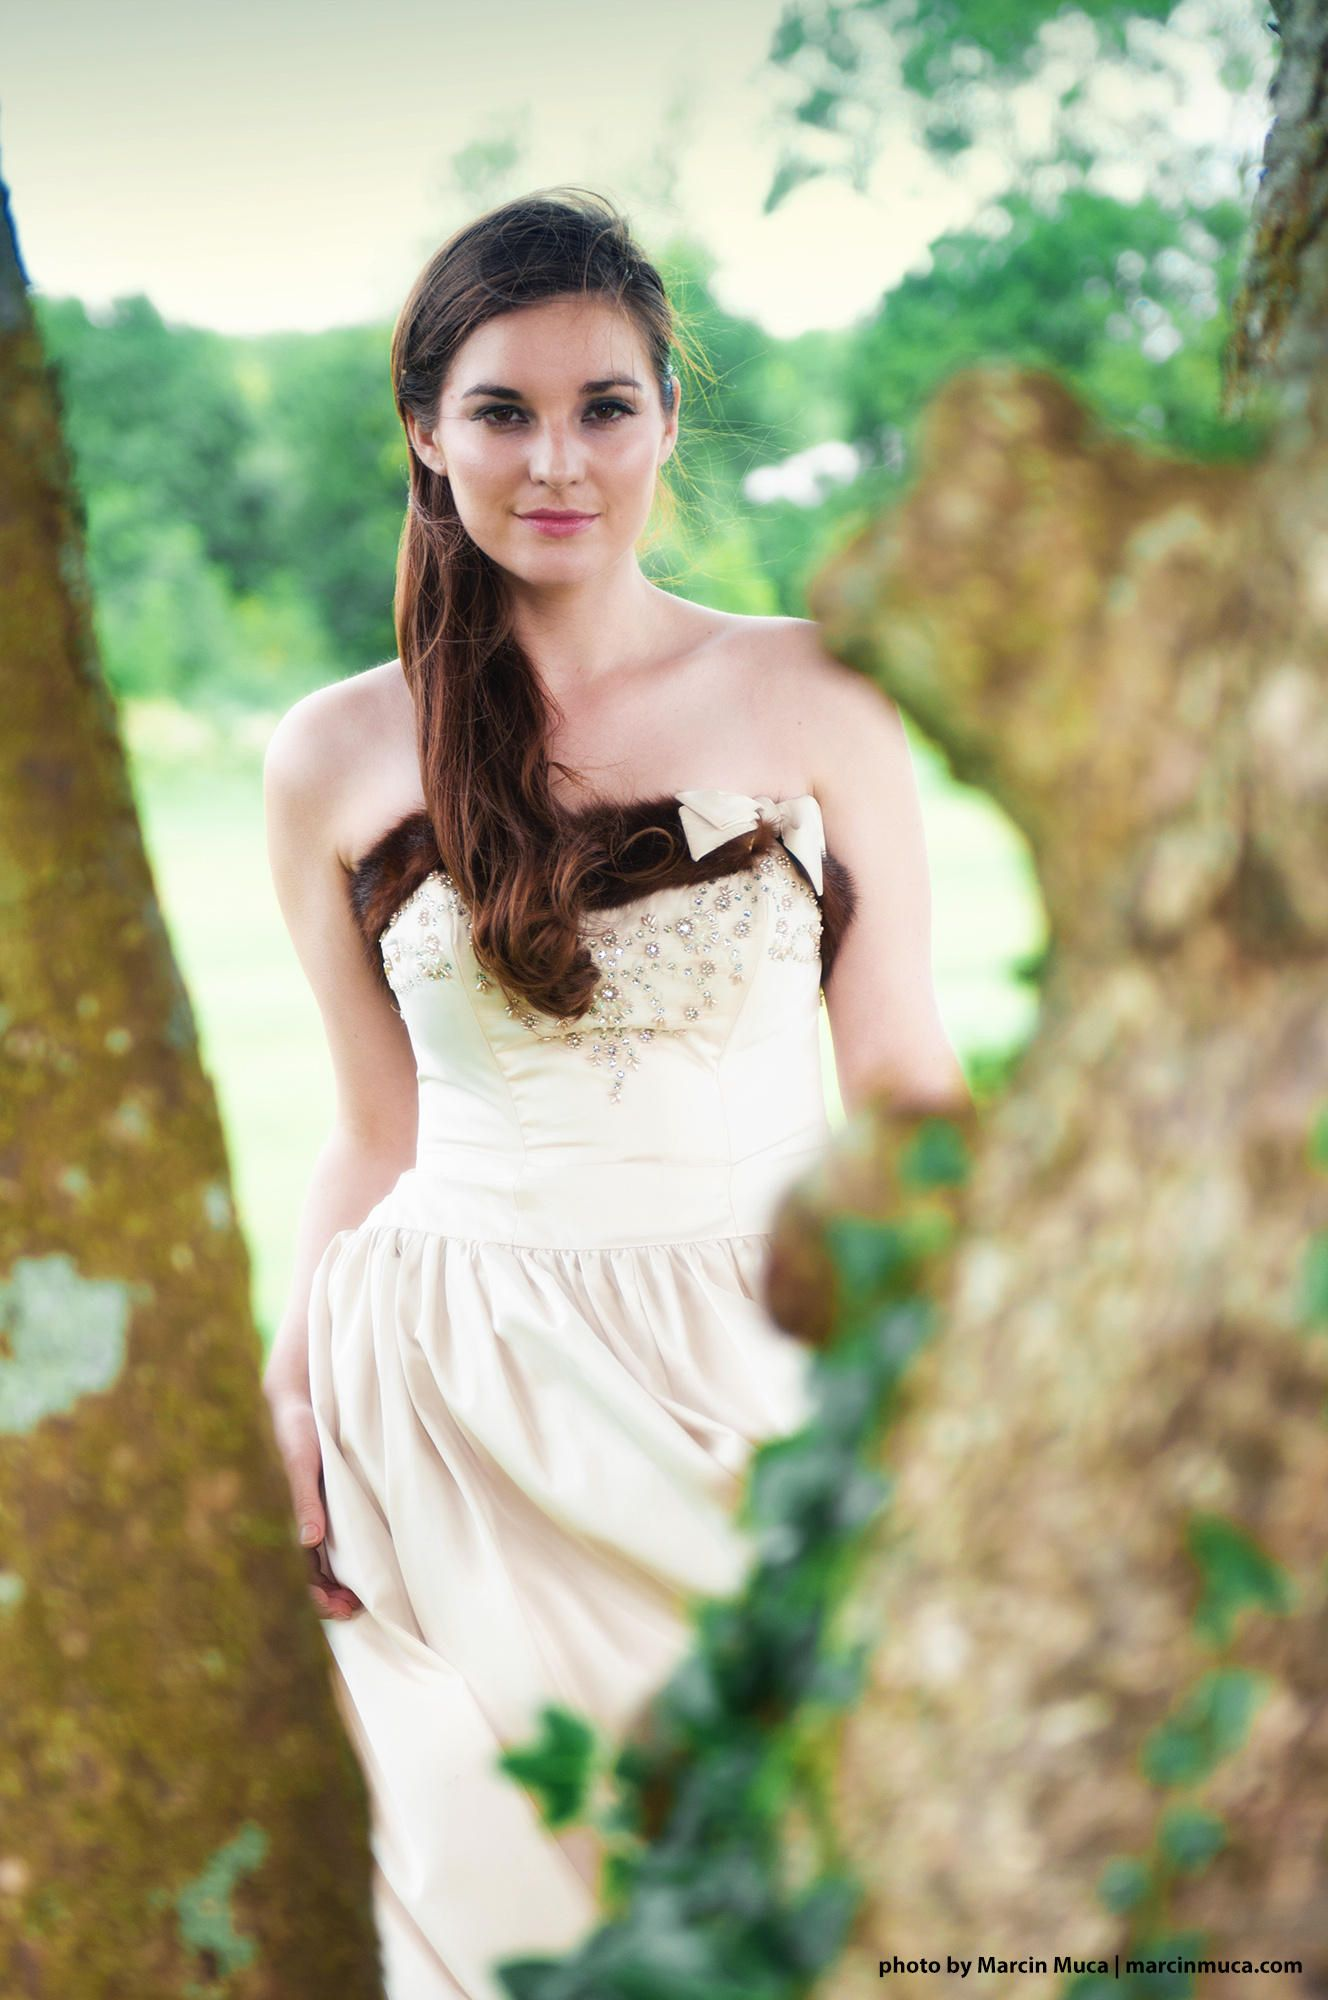 Vintage Fashion - photo of actress/model Maria done on the grounds of Glenlo Abbey Hotel, Galway, Ireland